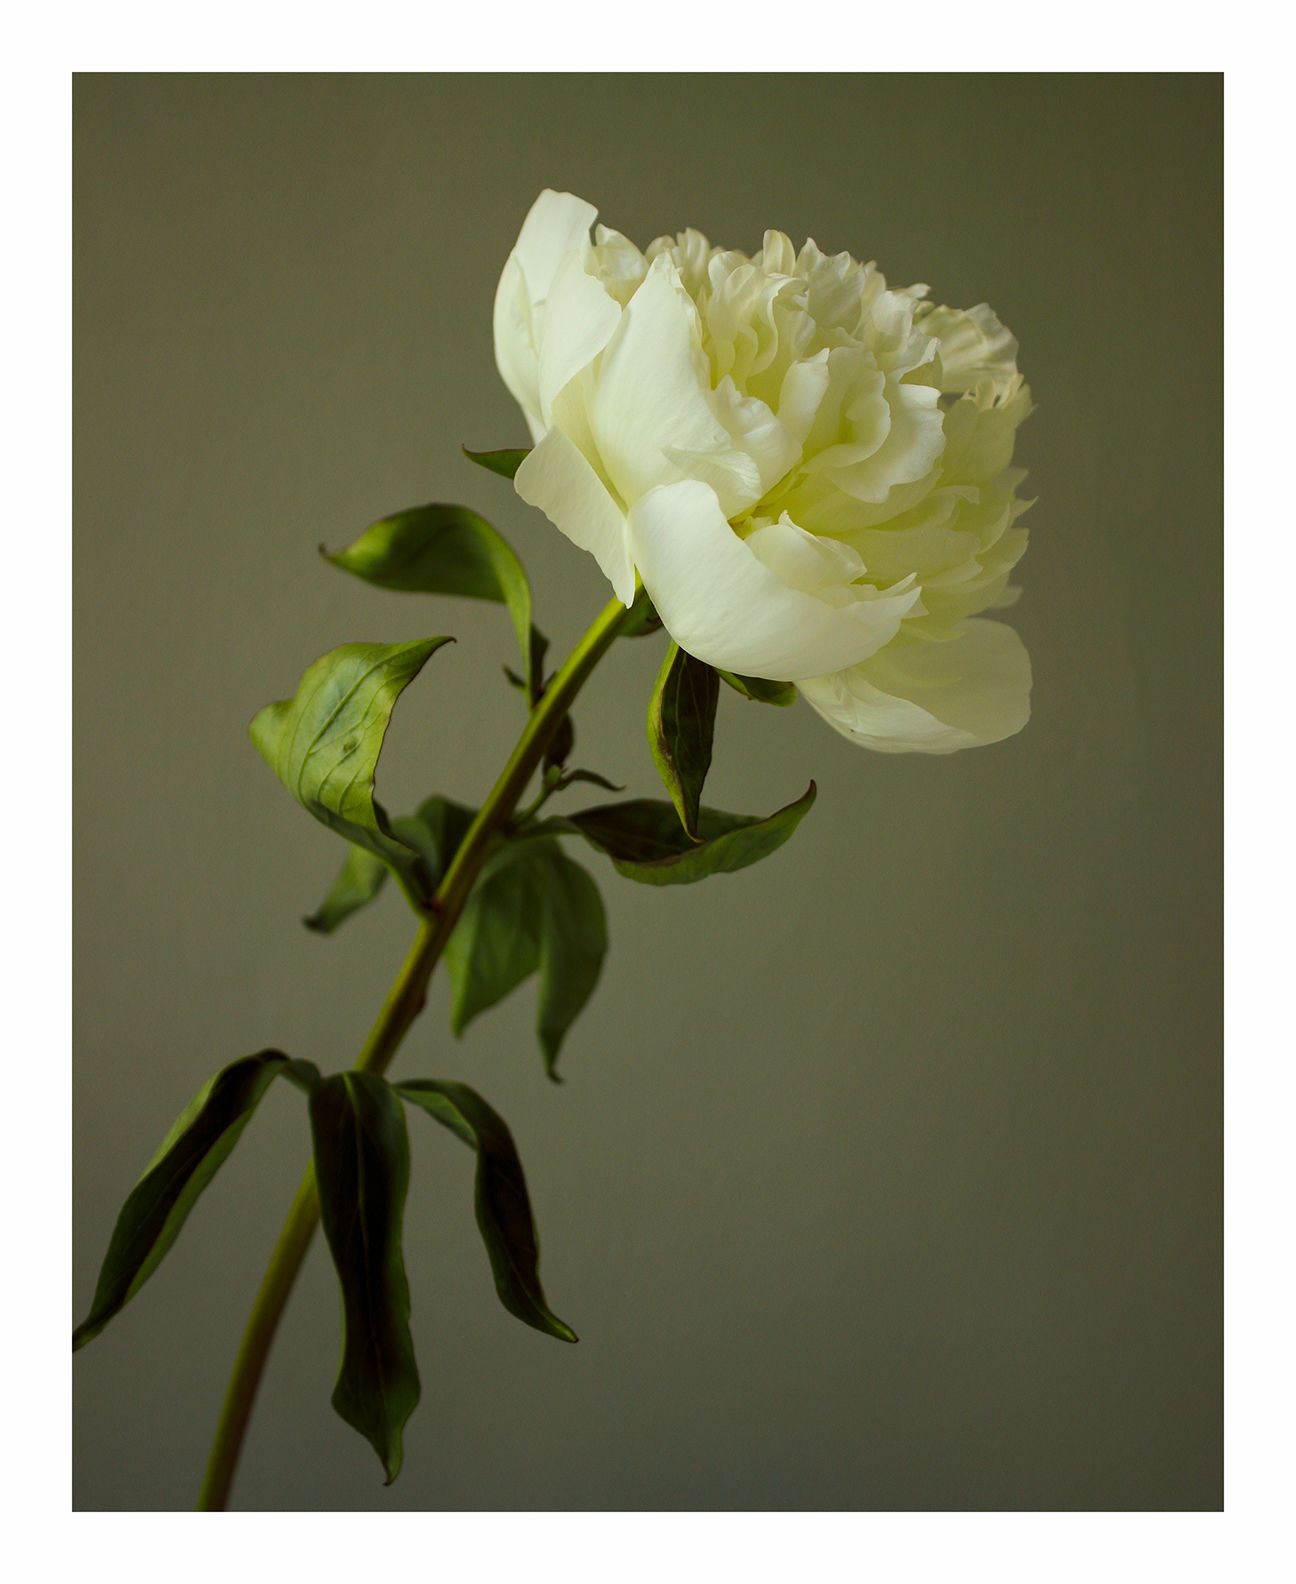 Going Over: White Peony